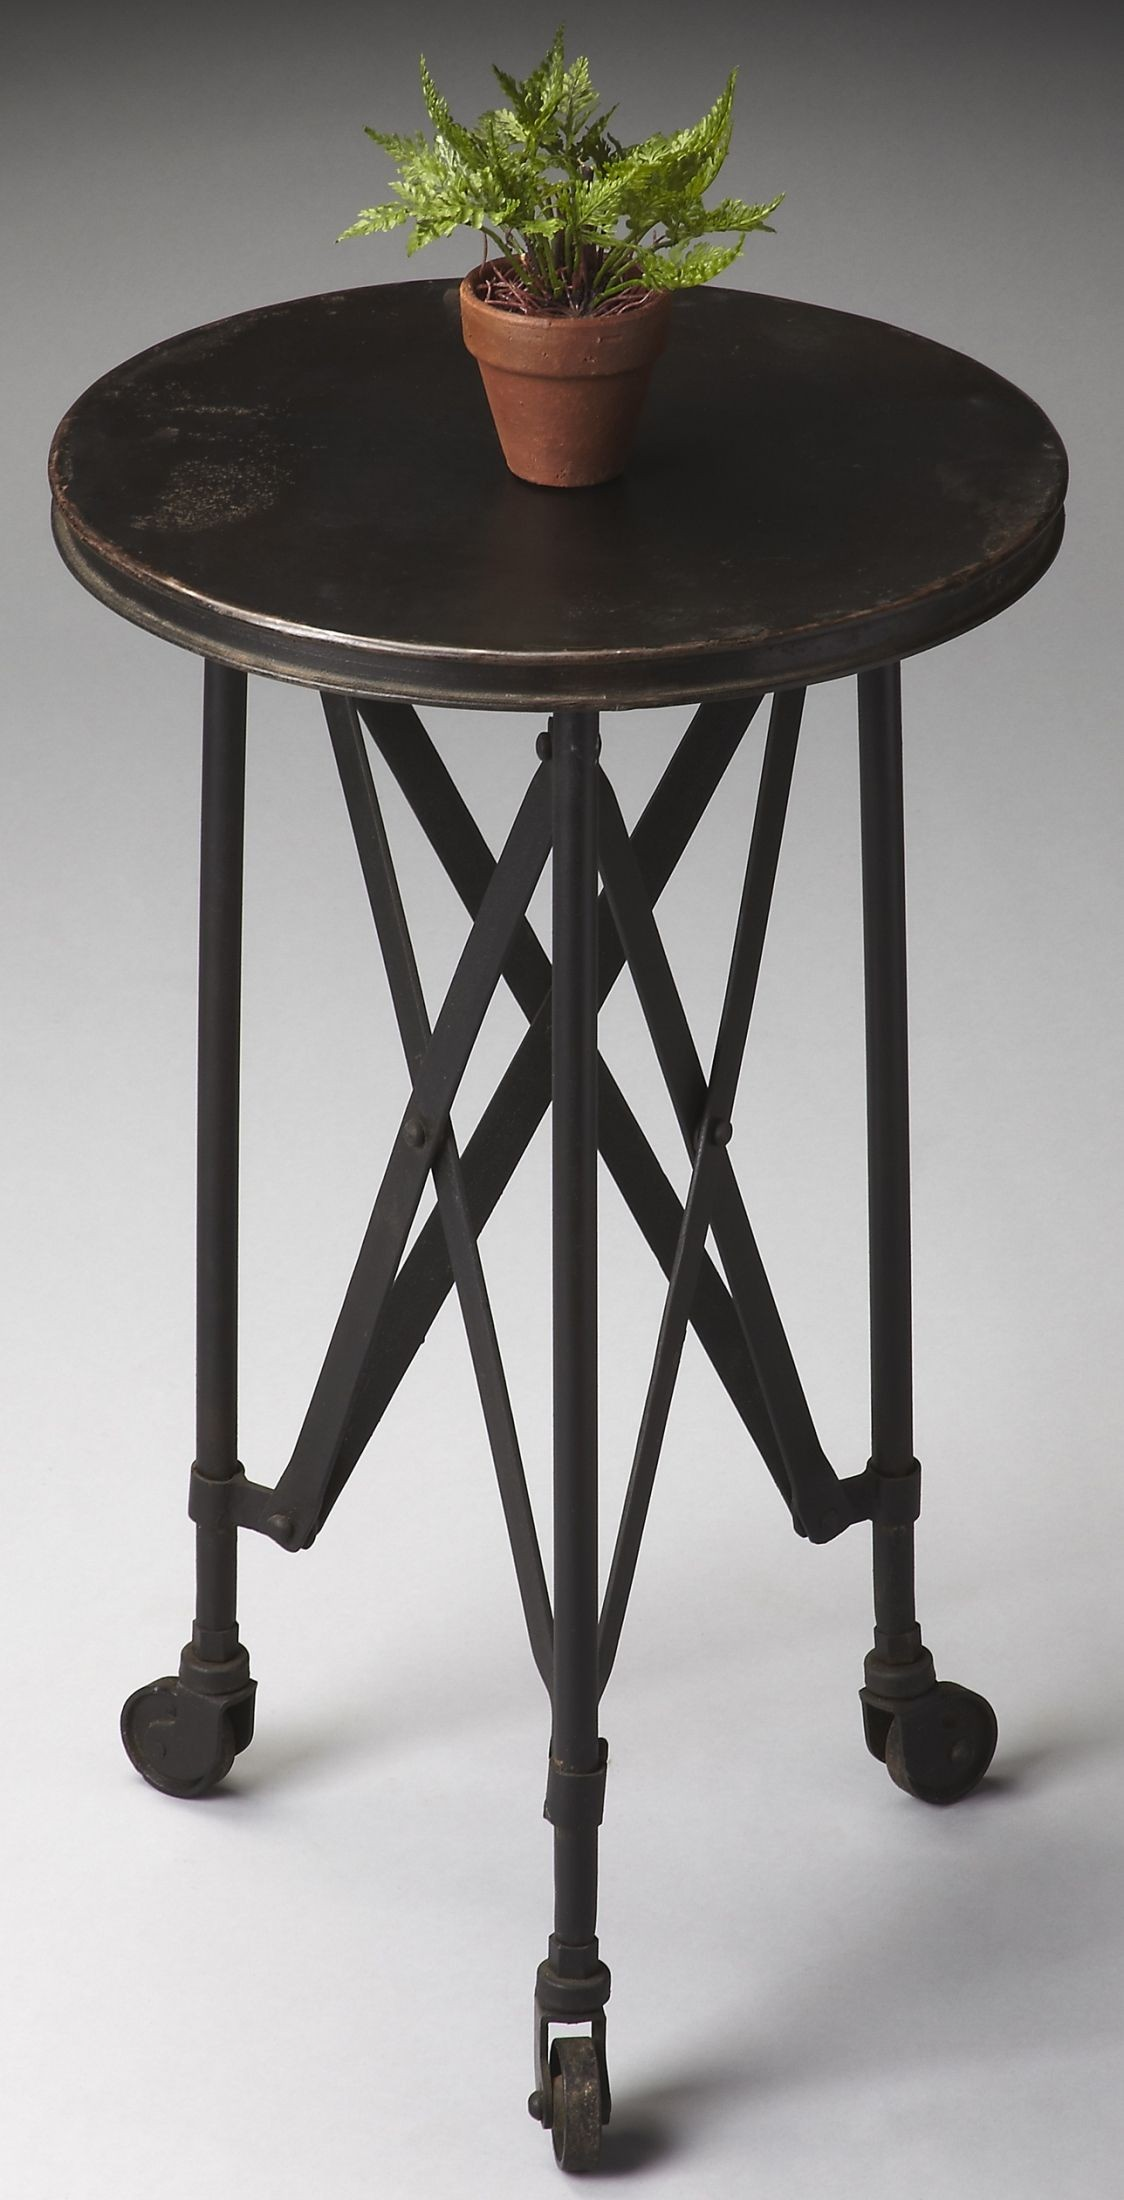 1168025 industrial chic metalworks accent table from. Black Bedroom Furniture Sets. Home Design Ideas